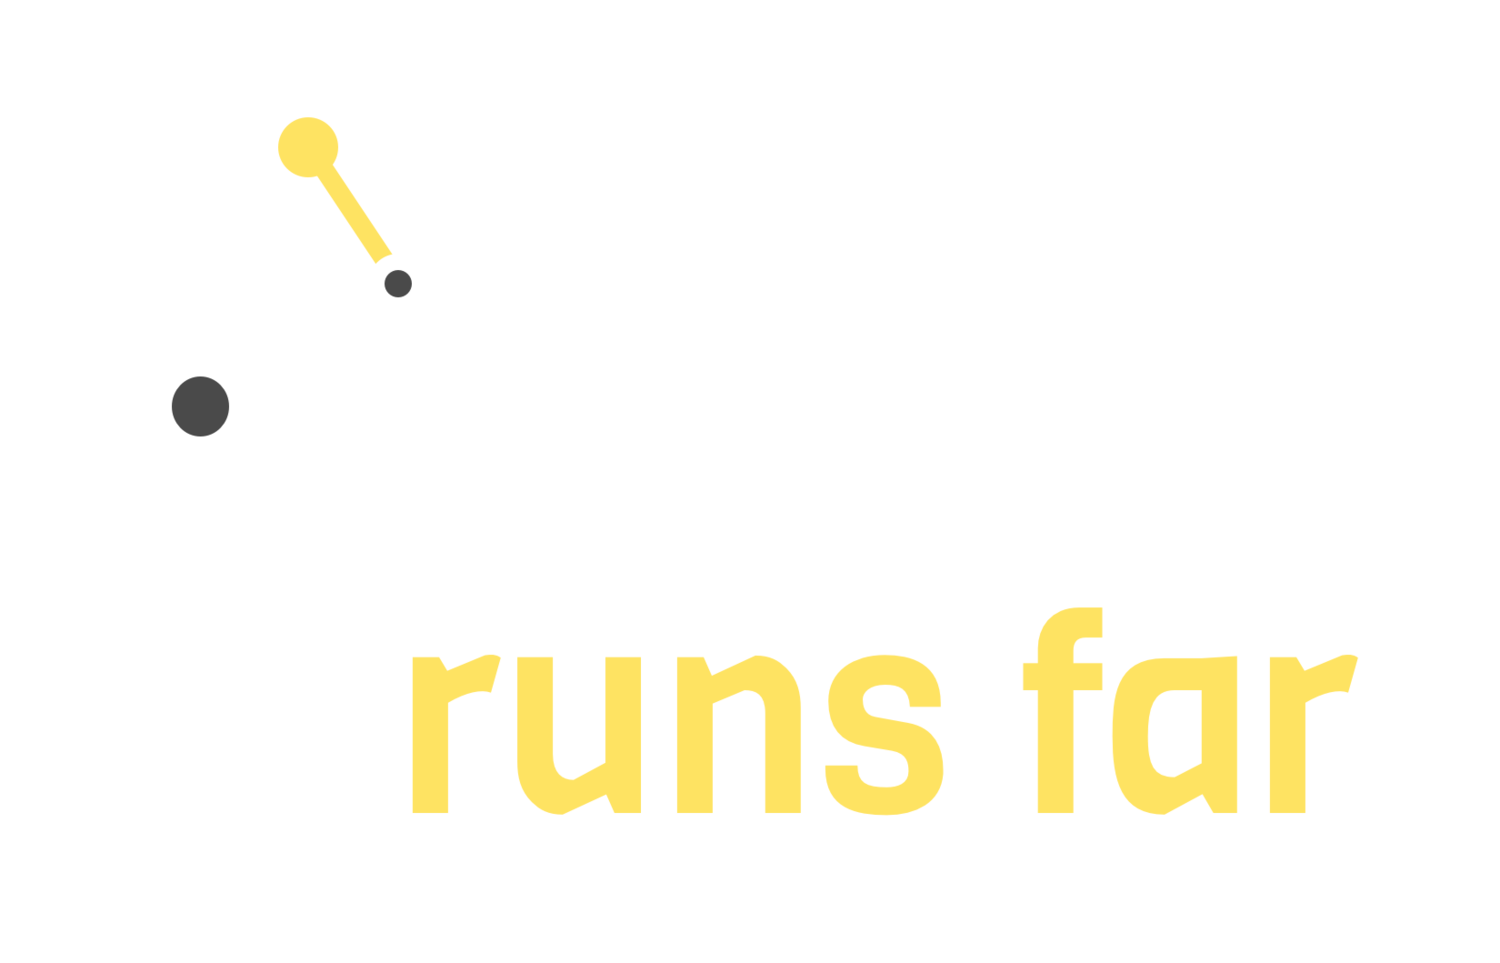 James Runs Far